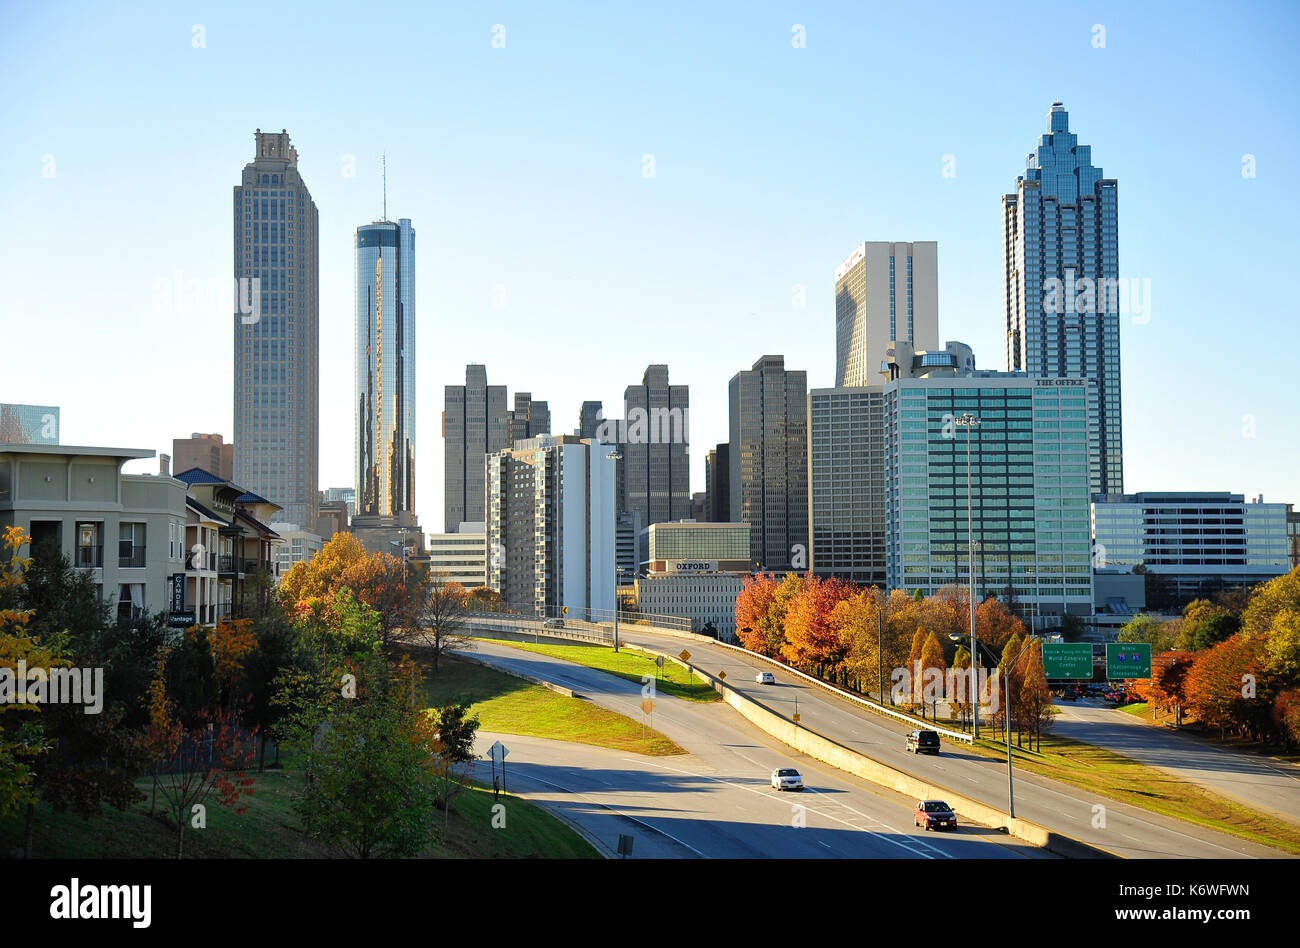 Skyline with skyscrapers, Atlanta, Georgia, USA - Stock Image